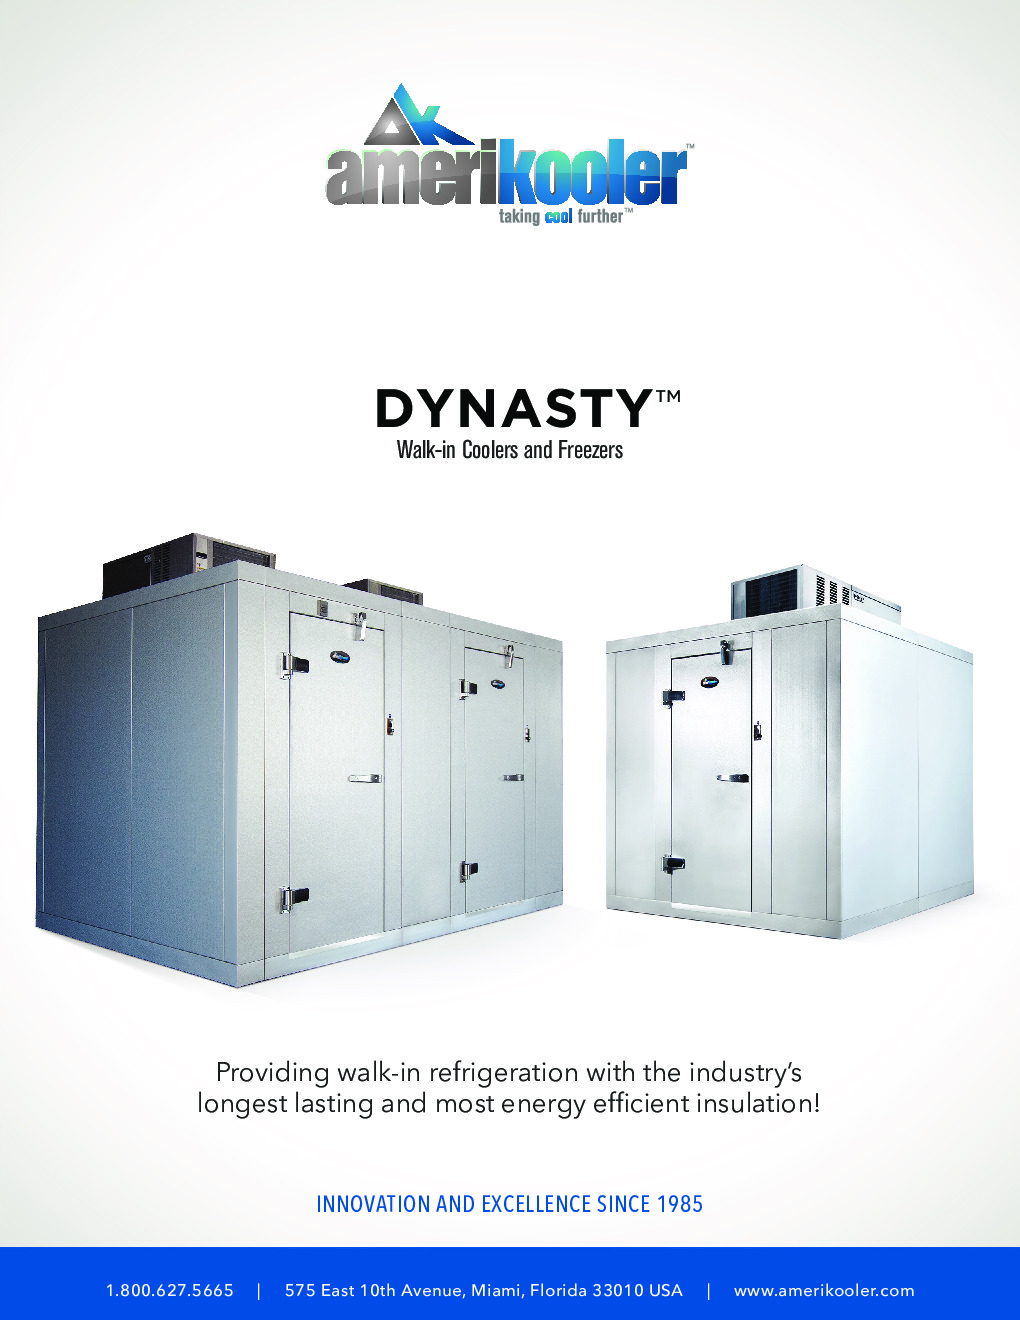 AmeriKooler DW101377N-4/9-SC 10' X 13' Walk-In Cooler, 9' L Cooler without Floor and 4' L Freezer, Self Contained